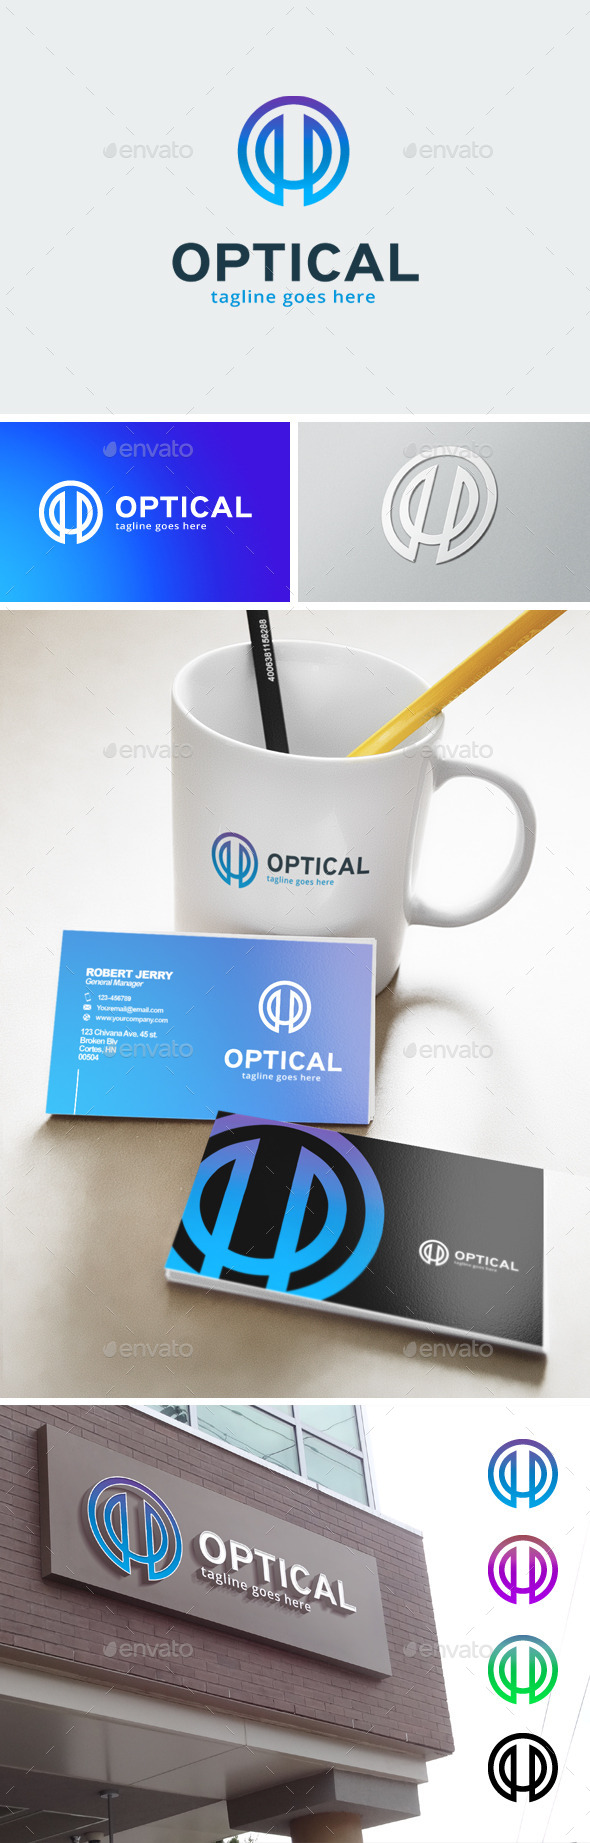 Letter O Logo - Optic - Abstract Logo Templates